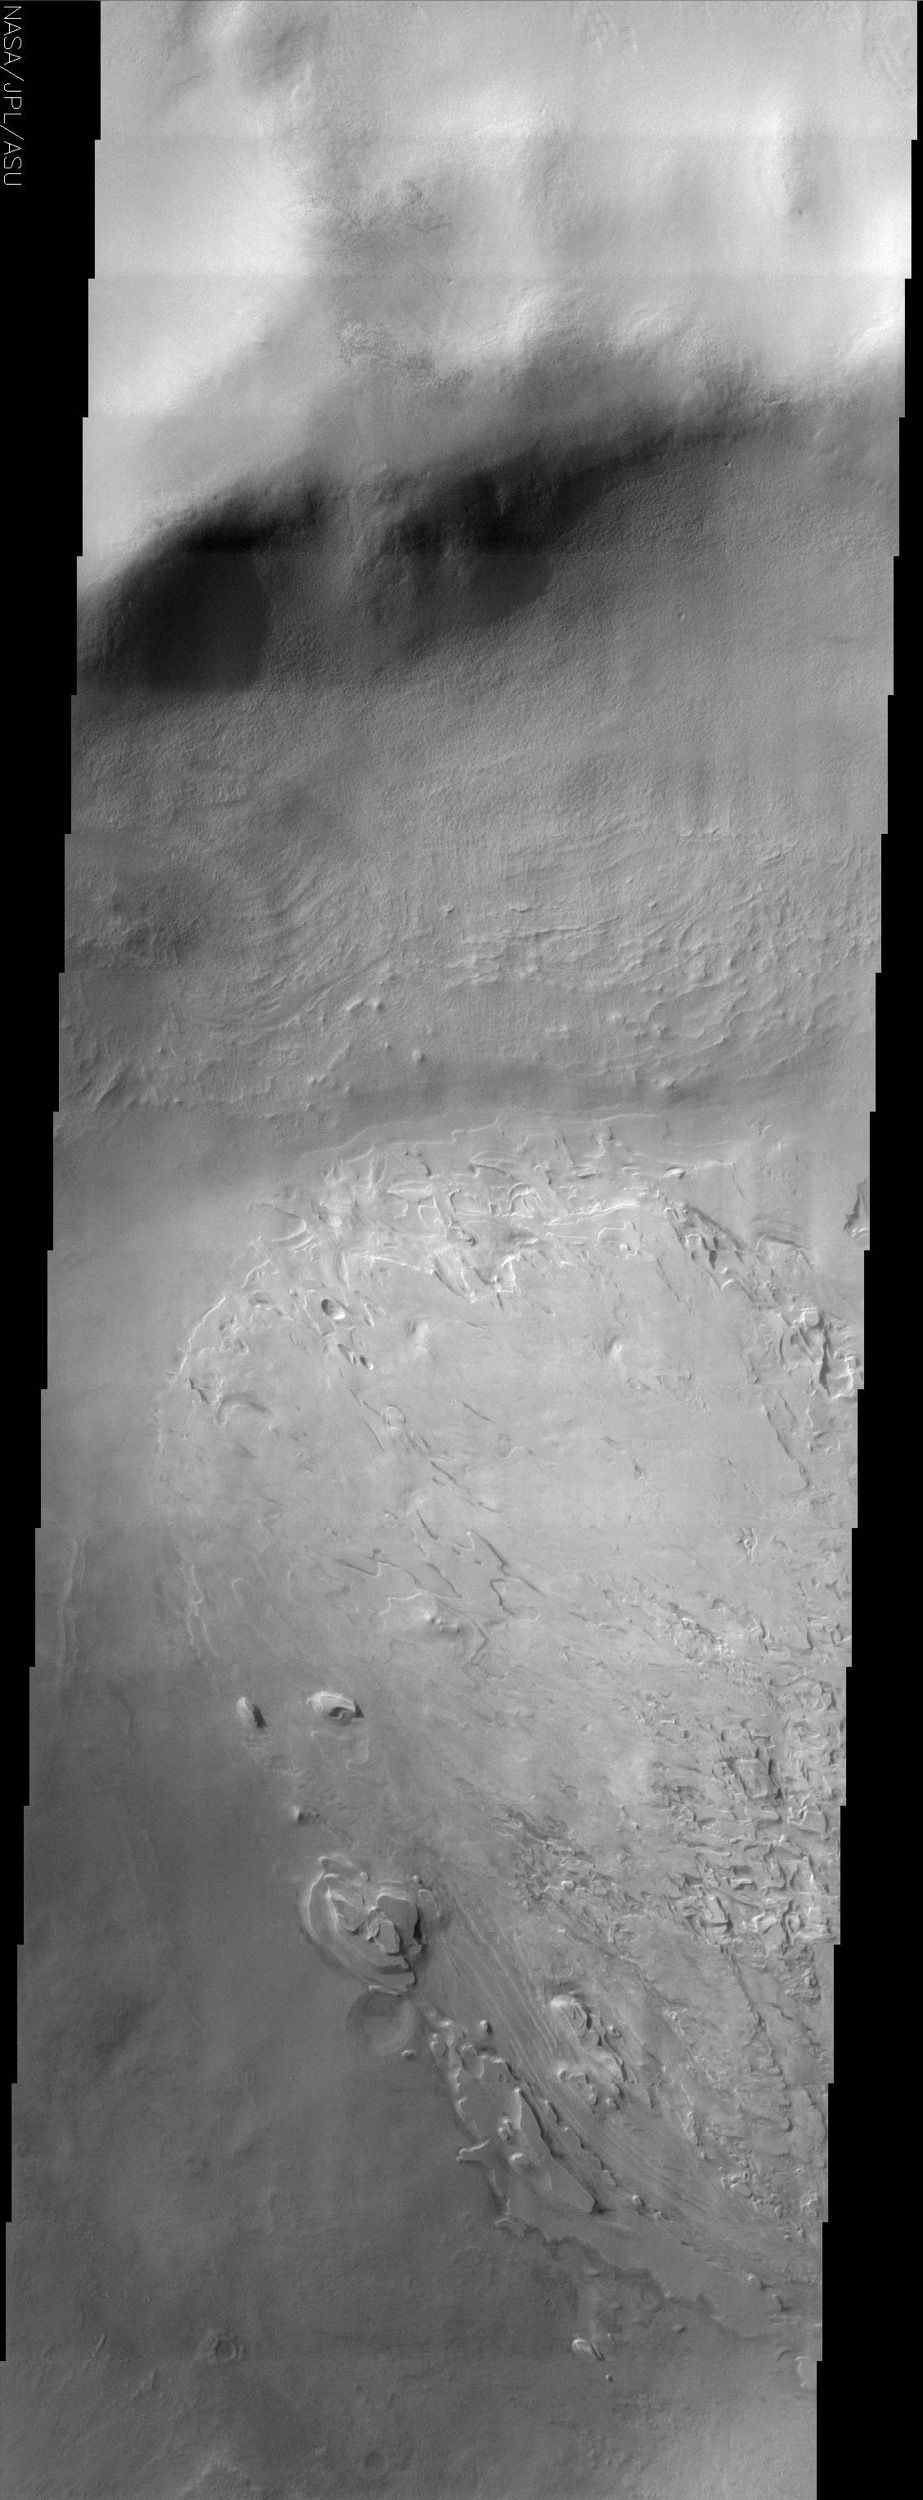 The craters on Mars display a variety of interior deposits, one of which is shown in this image from NASA's Mars Odyssey. Spallanzani Crater is located far enough south that it probably experiences the seasonal growth and retreat of the south polar cap.